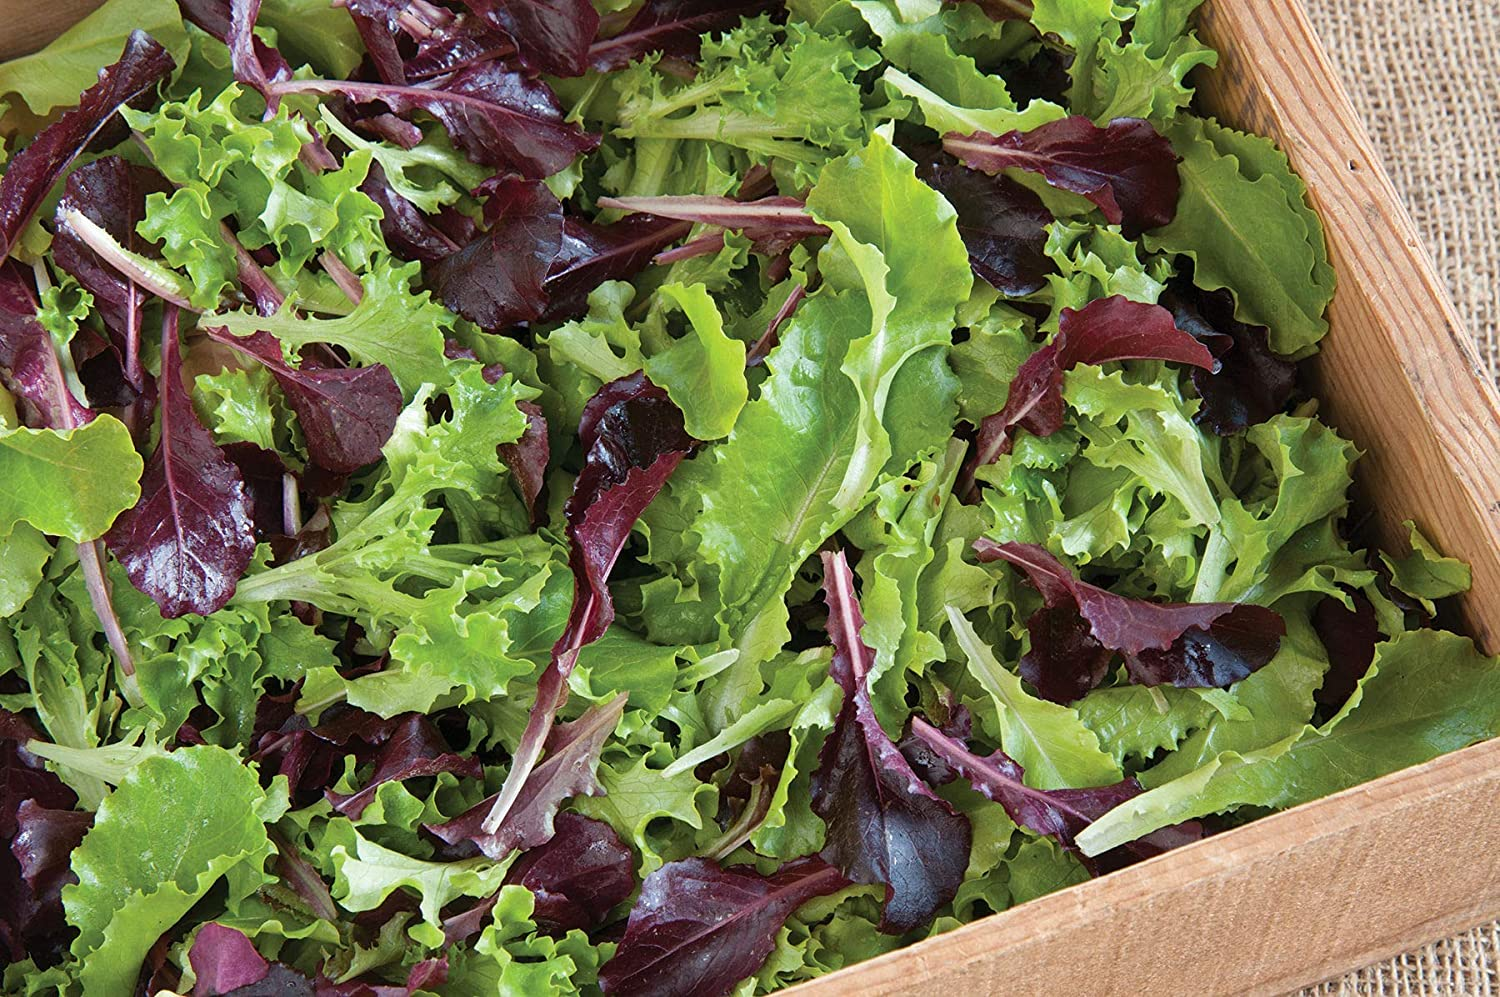 David's Garden Seeds Lettuce Mix Five Star Greenhouse 1934 (Multi) 200 Non-GMO, Open Pollinated Seeds